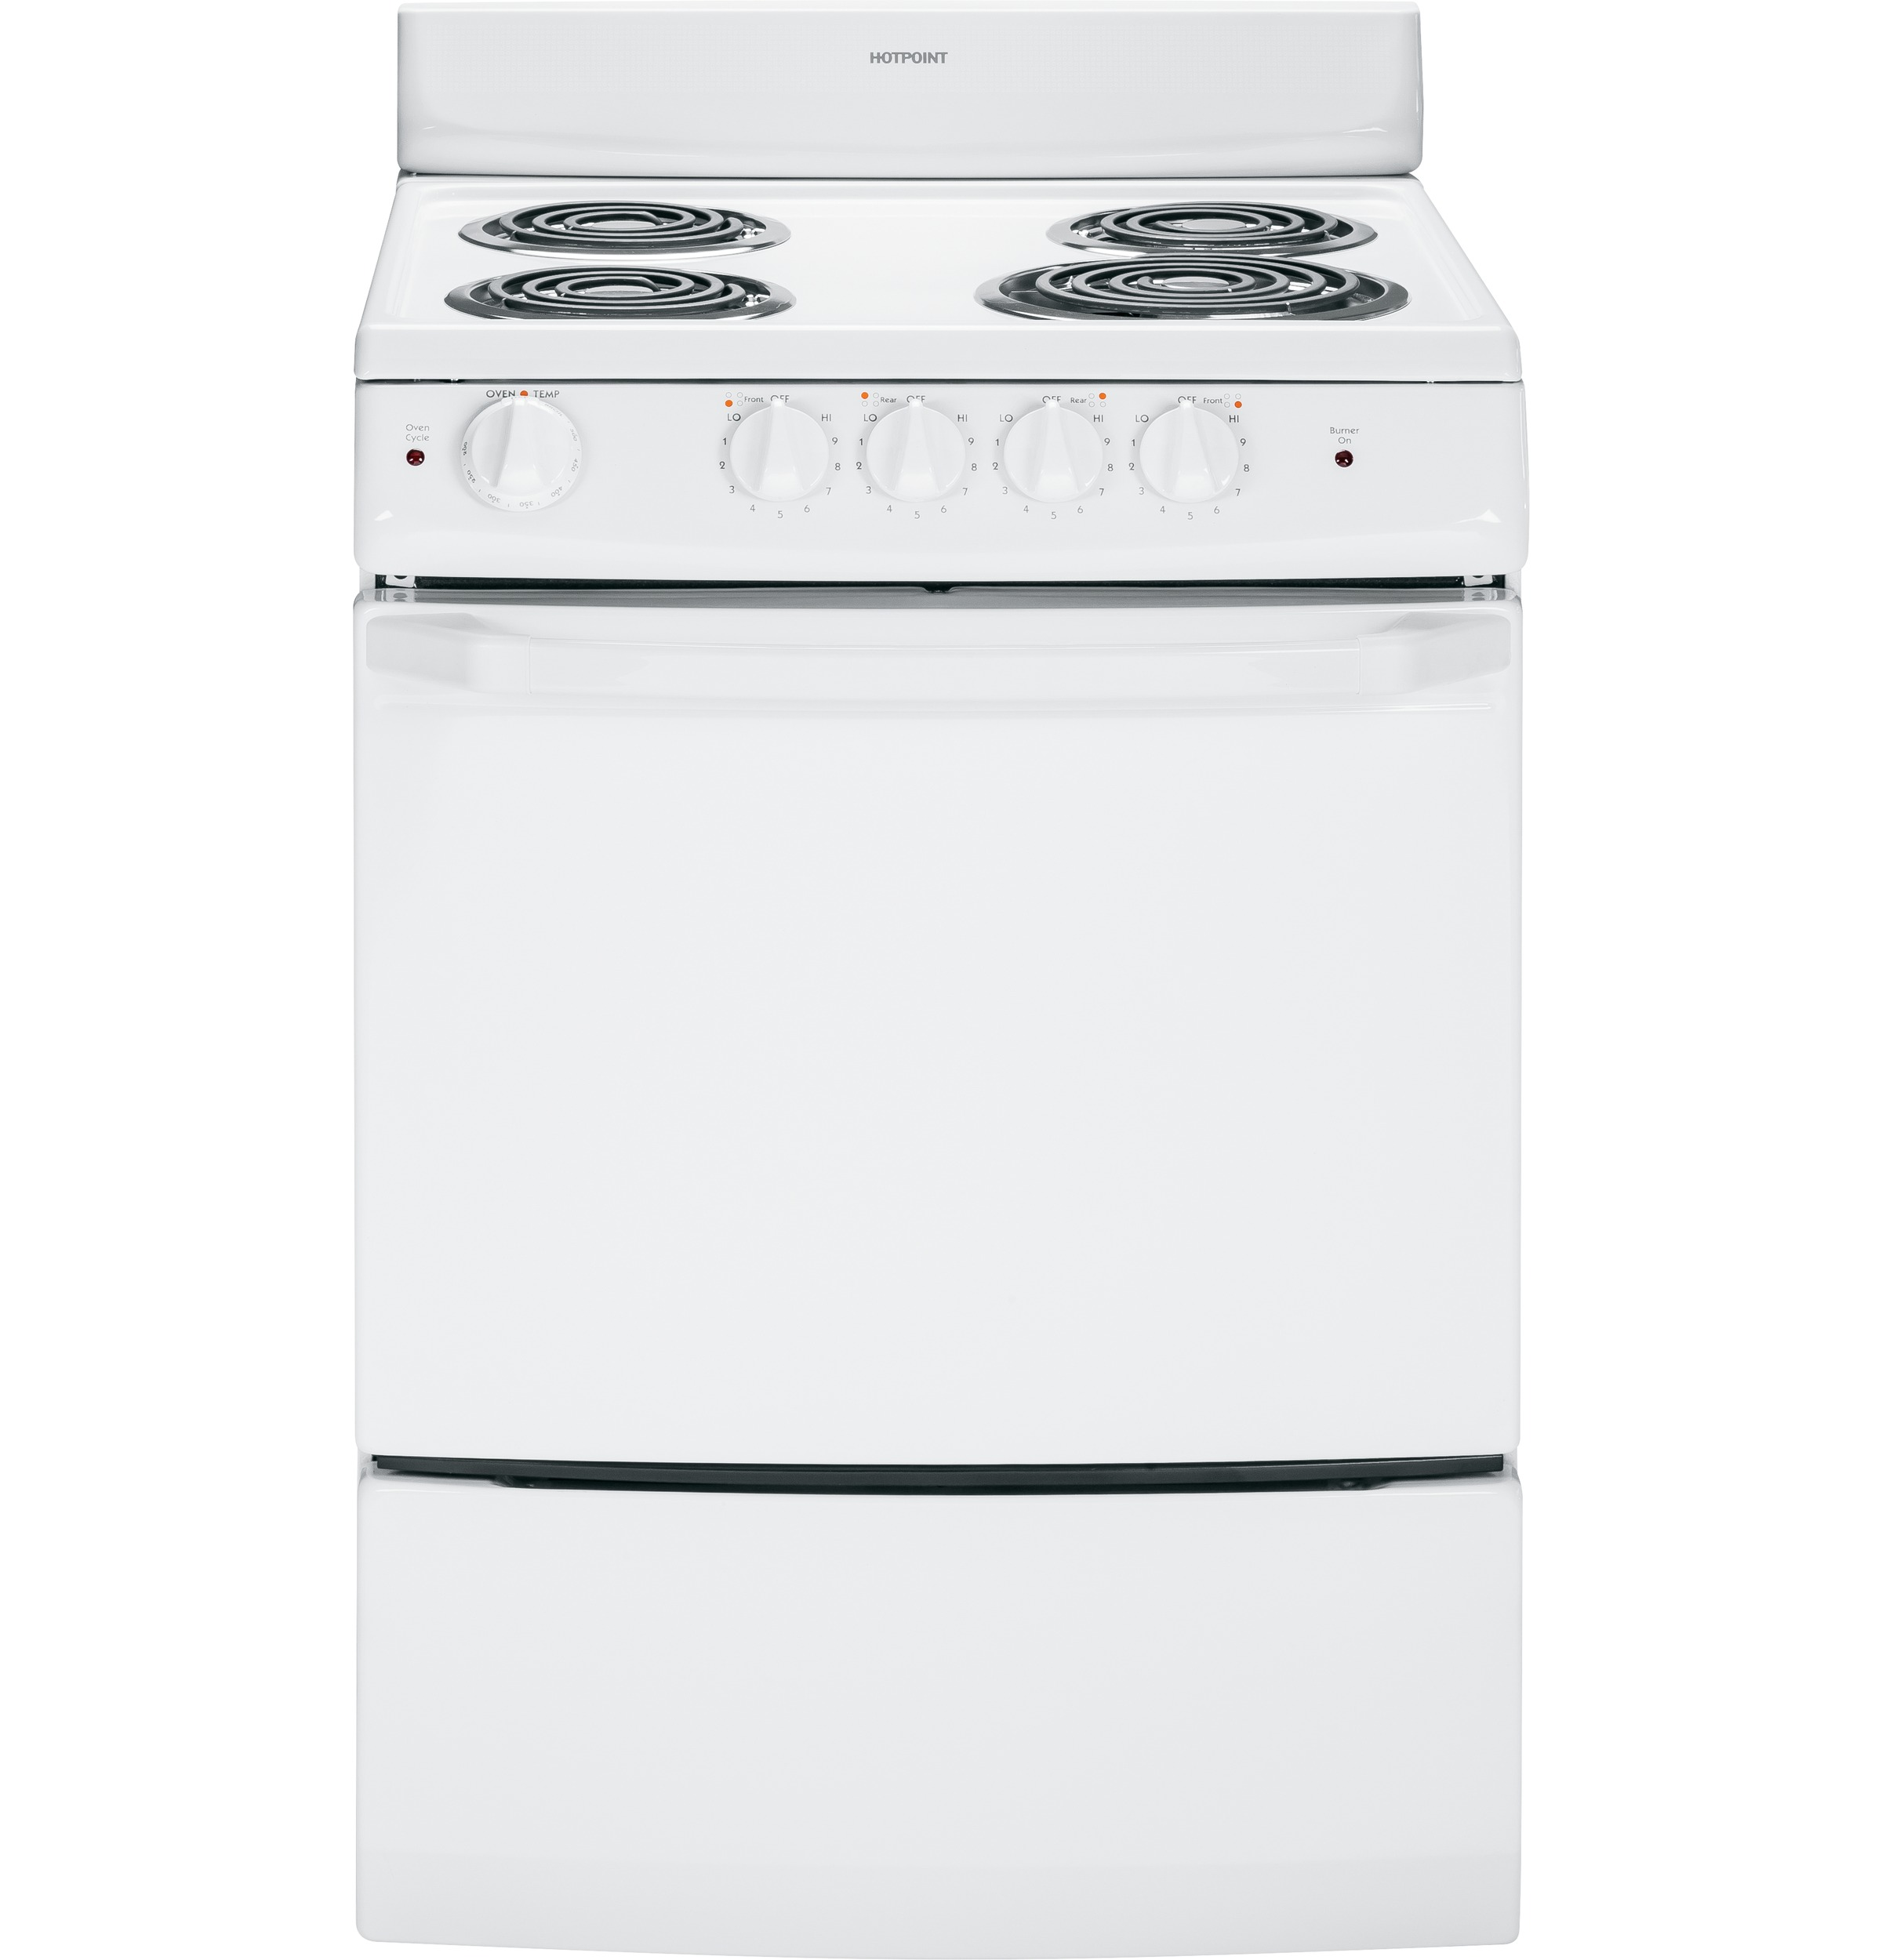 Hotpoint 24 Electric Free Standing Range Ra724kwh Ge Appliances Wiring For 220 Stove Product Image